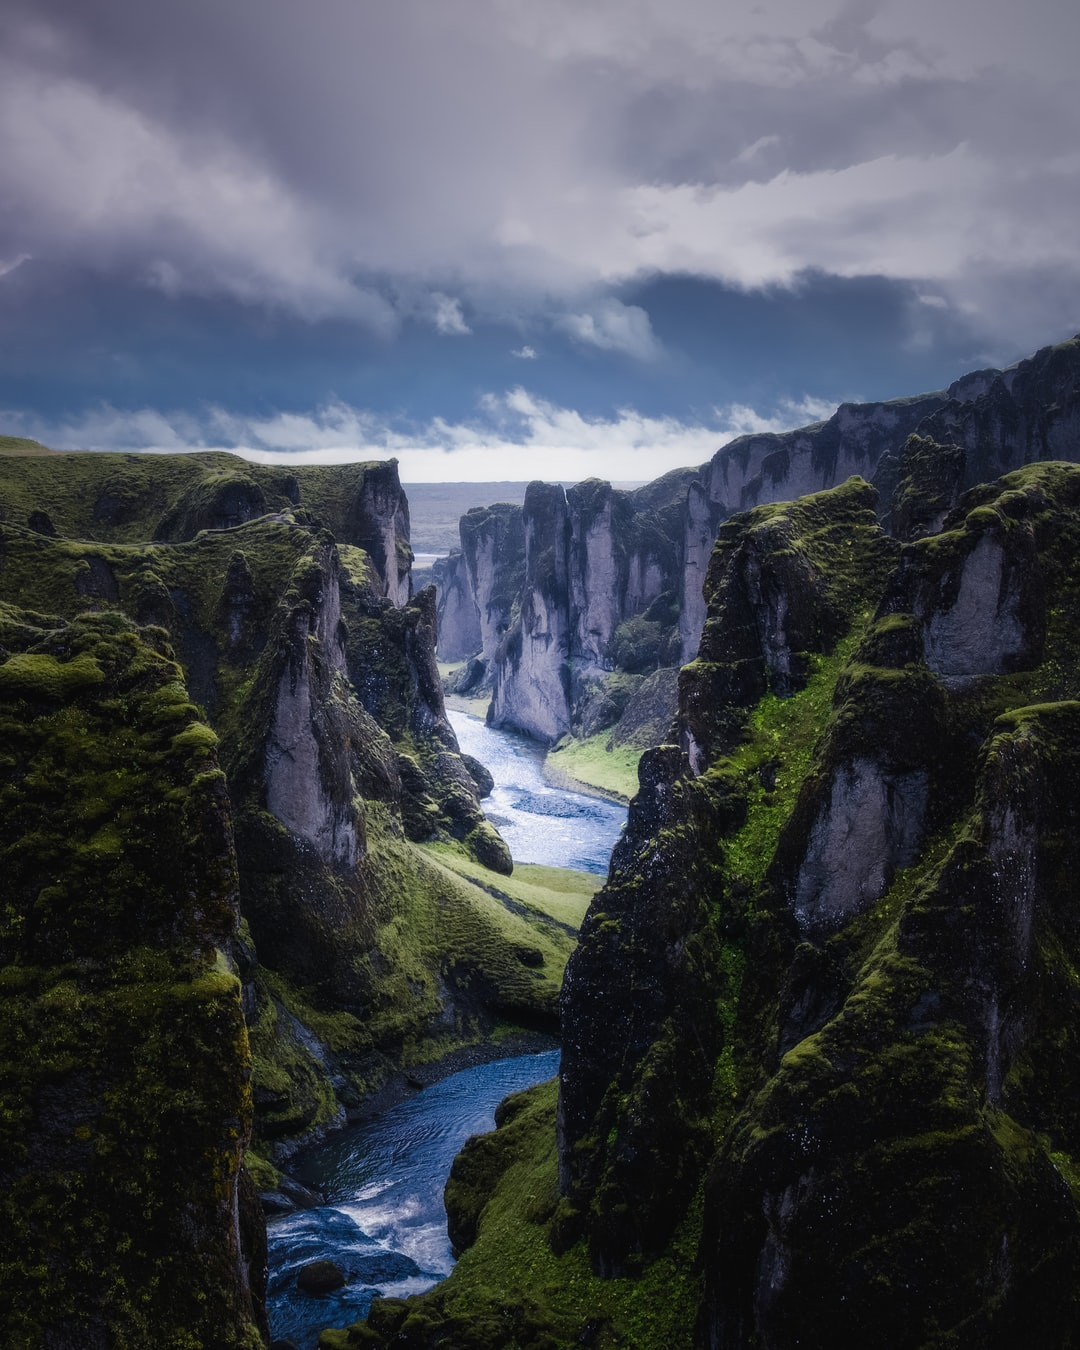 Download Free Images On Unsplash: Nature, Outdoors, Mountain And Cliff